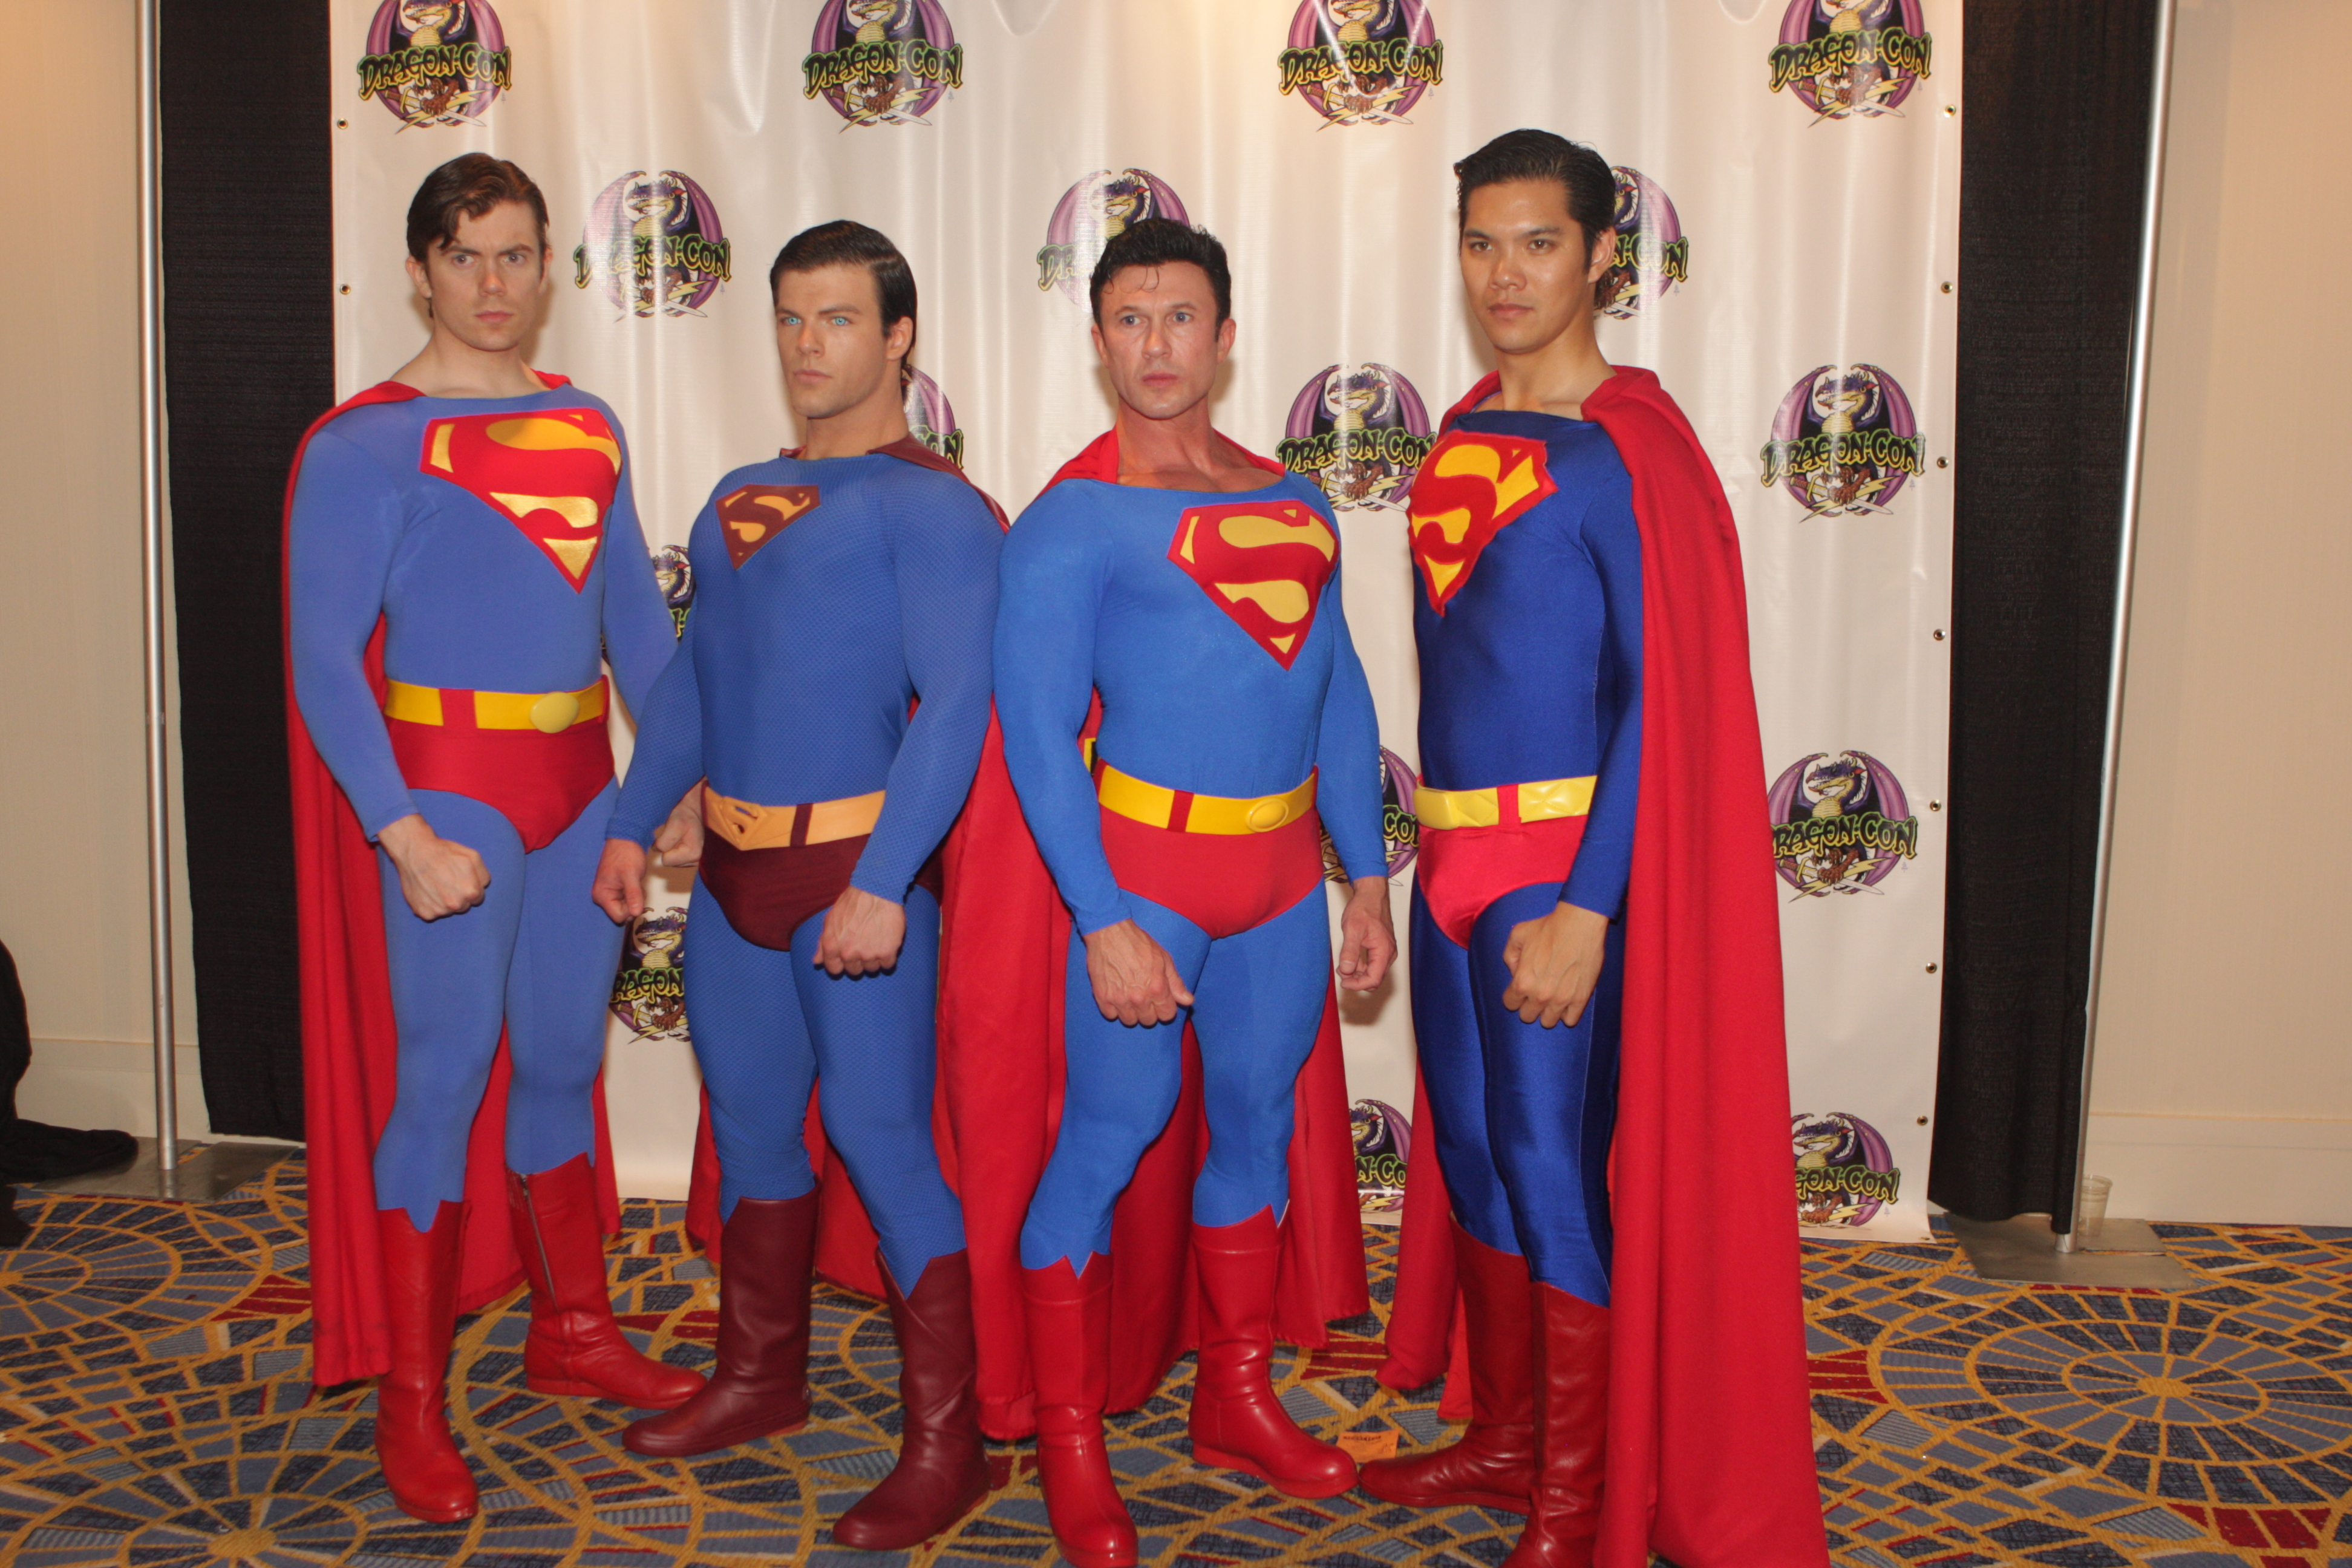 File:Superman cosplayers.jpg - Wikimedia Commons